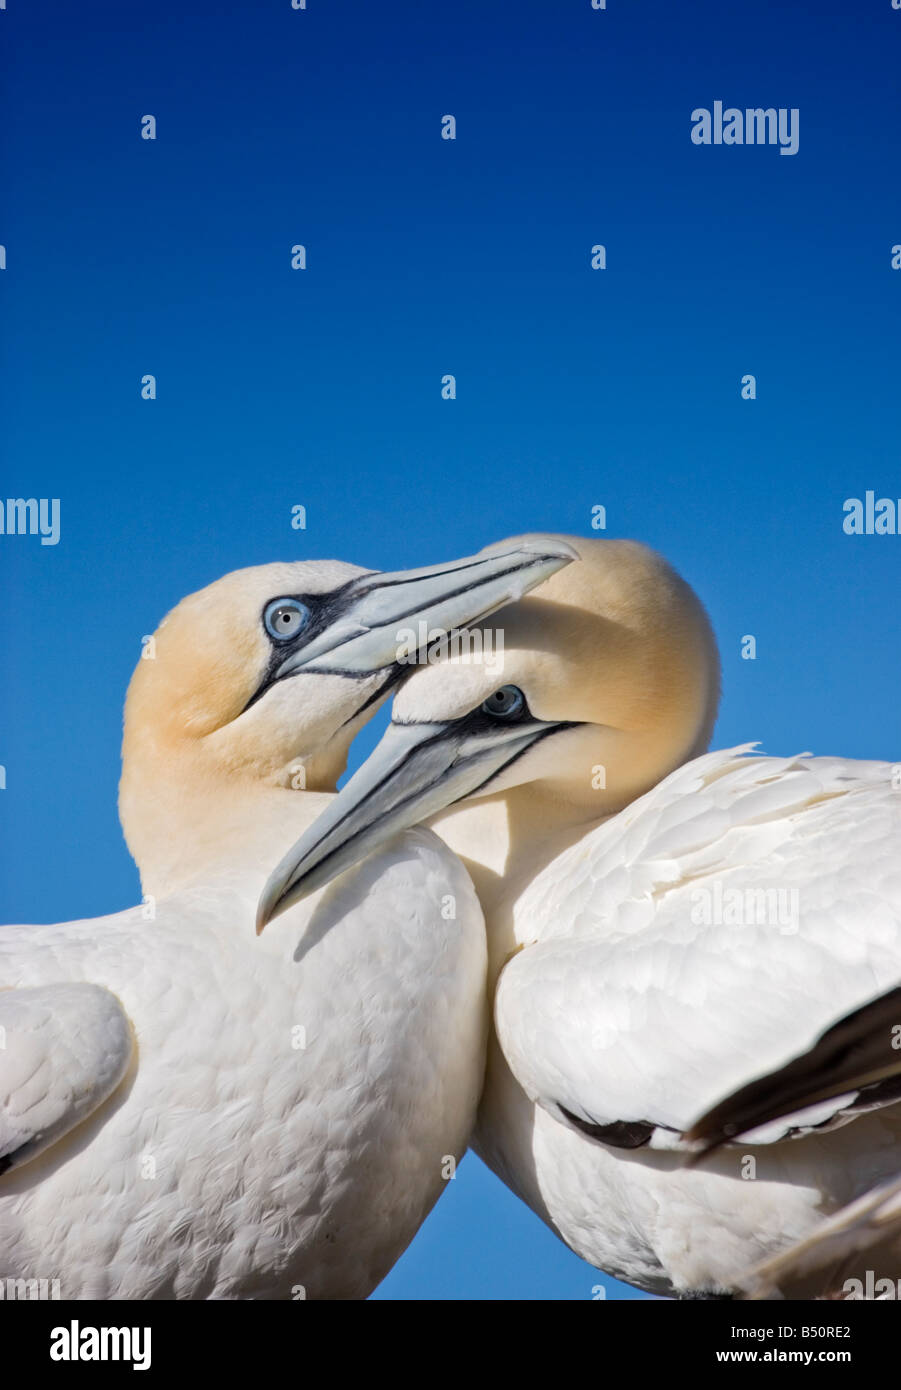 A pair of gannets billing - Stock Image